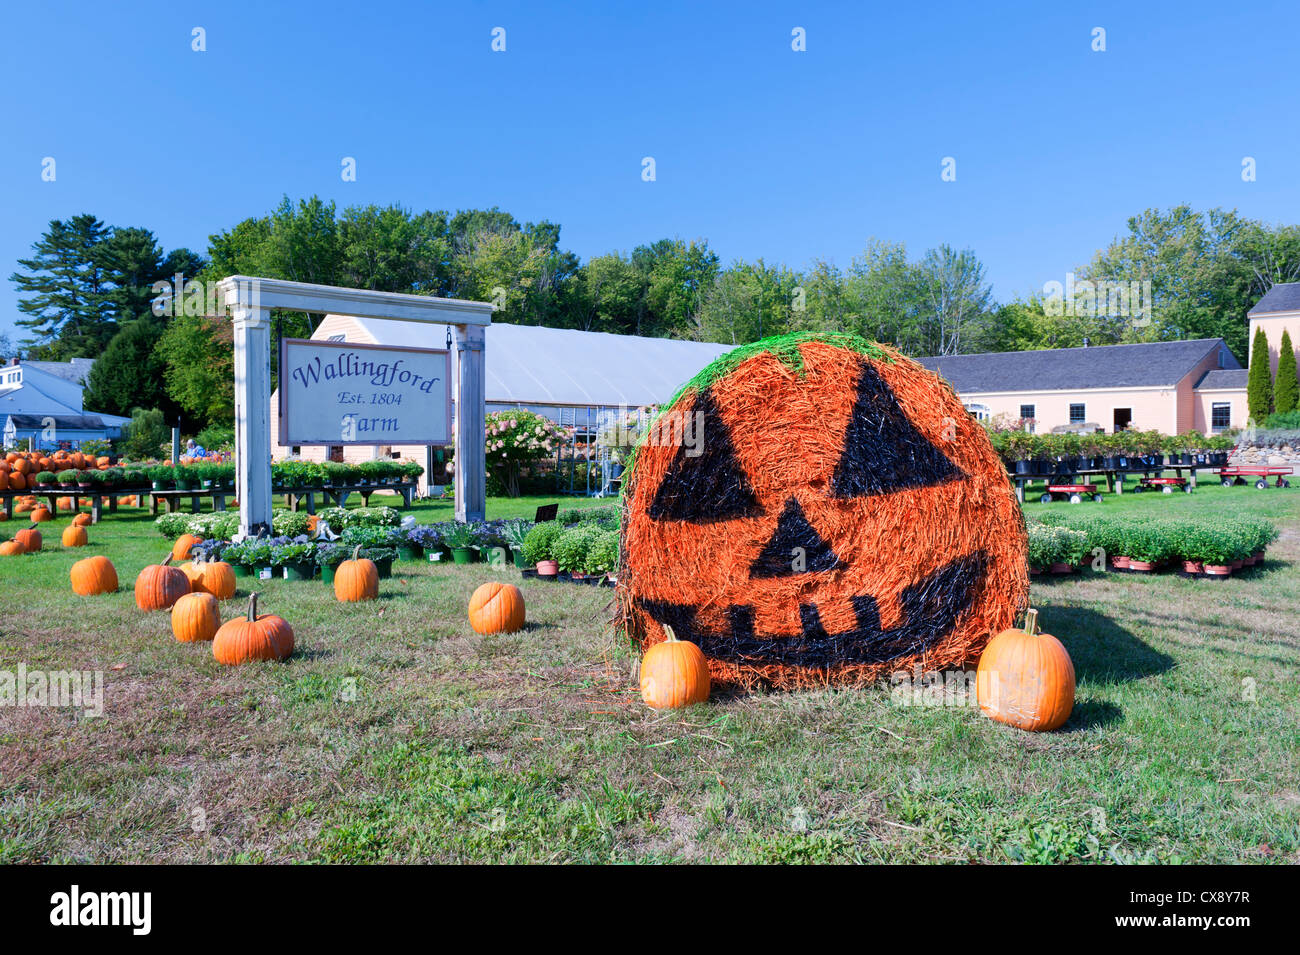 Hay bale decorated with the image of a Halloween pumpkin